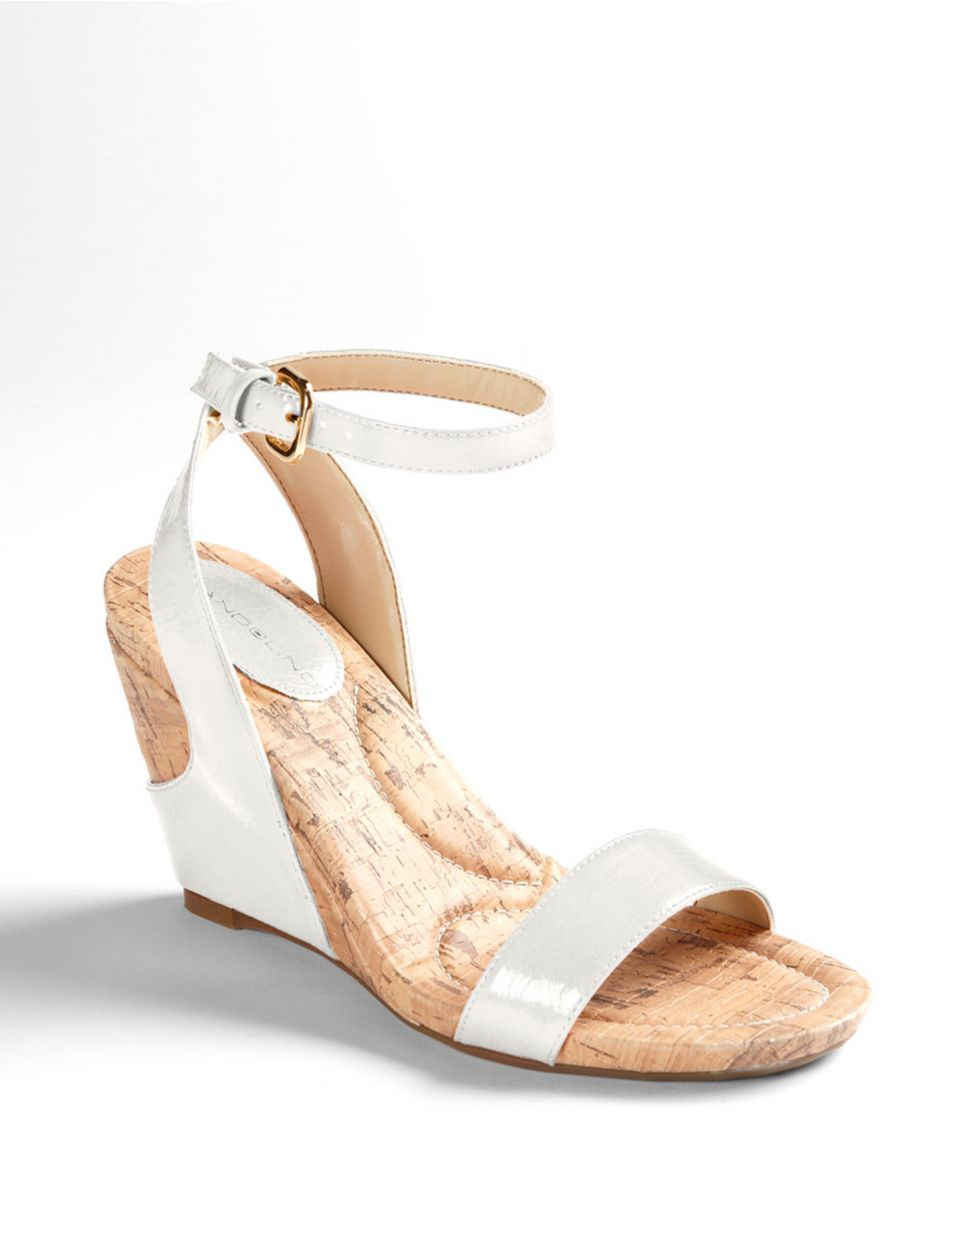 a6930363499f Bandolino Modern Girl Wedge Sandals in White - Lyst